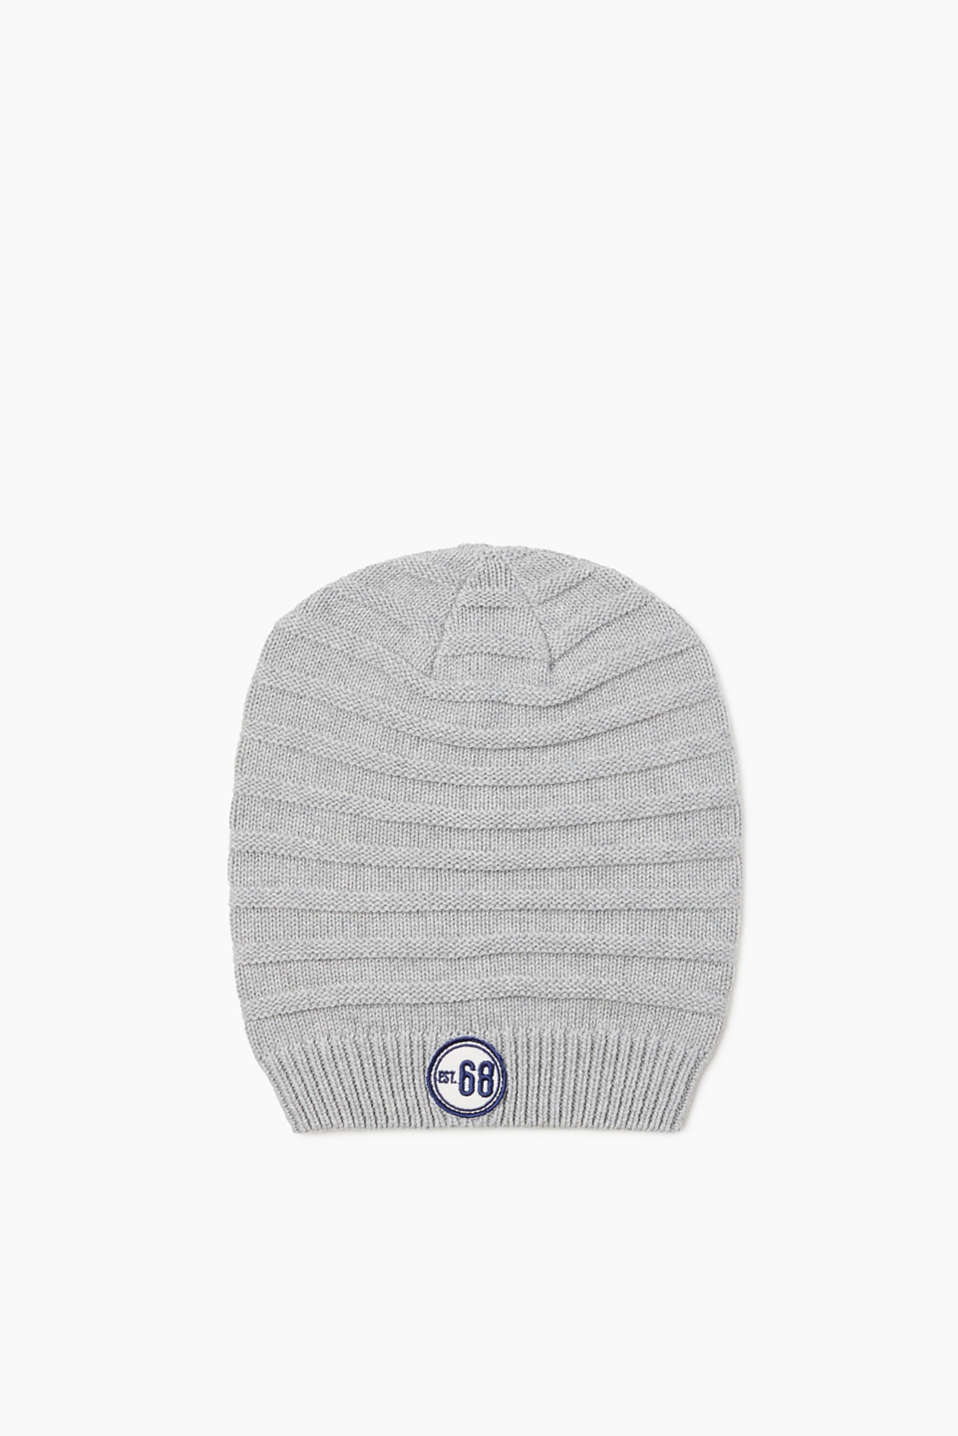 Esprit - Knitted beanie in 100% cotton